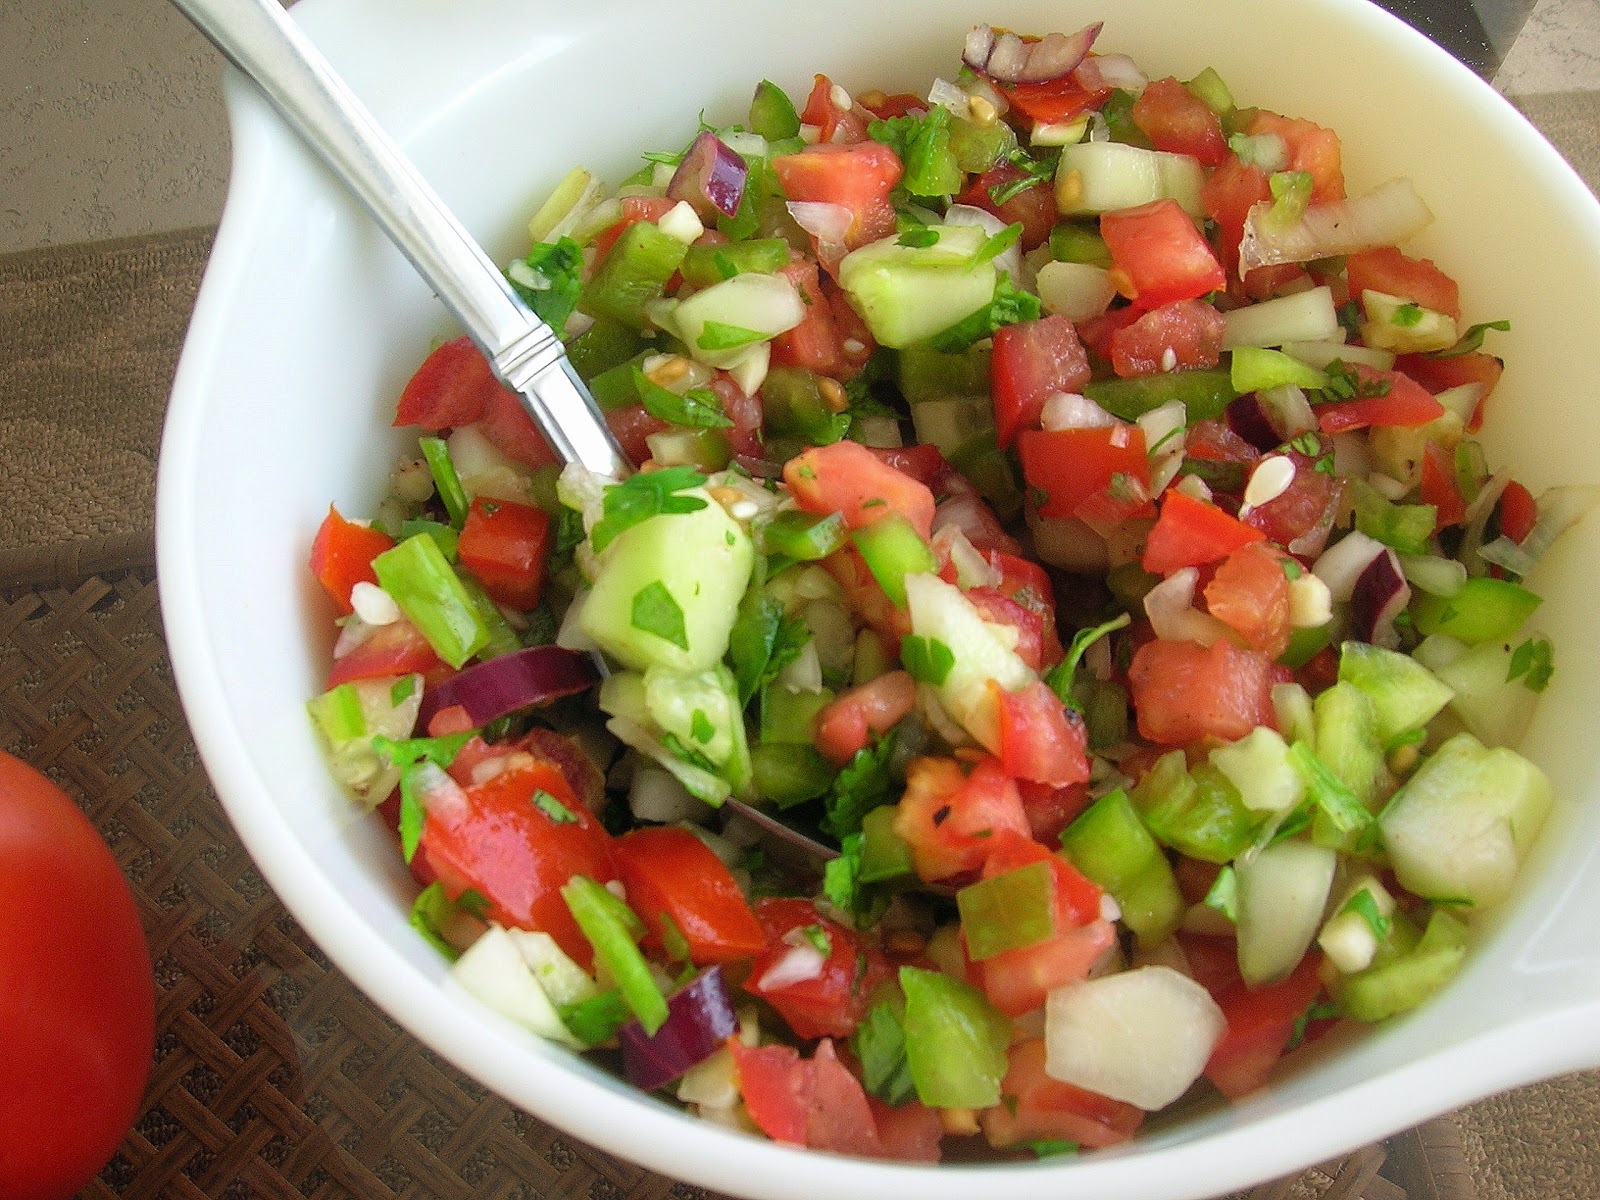 How to make homemade Pico De Gallo Mexican Sauce